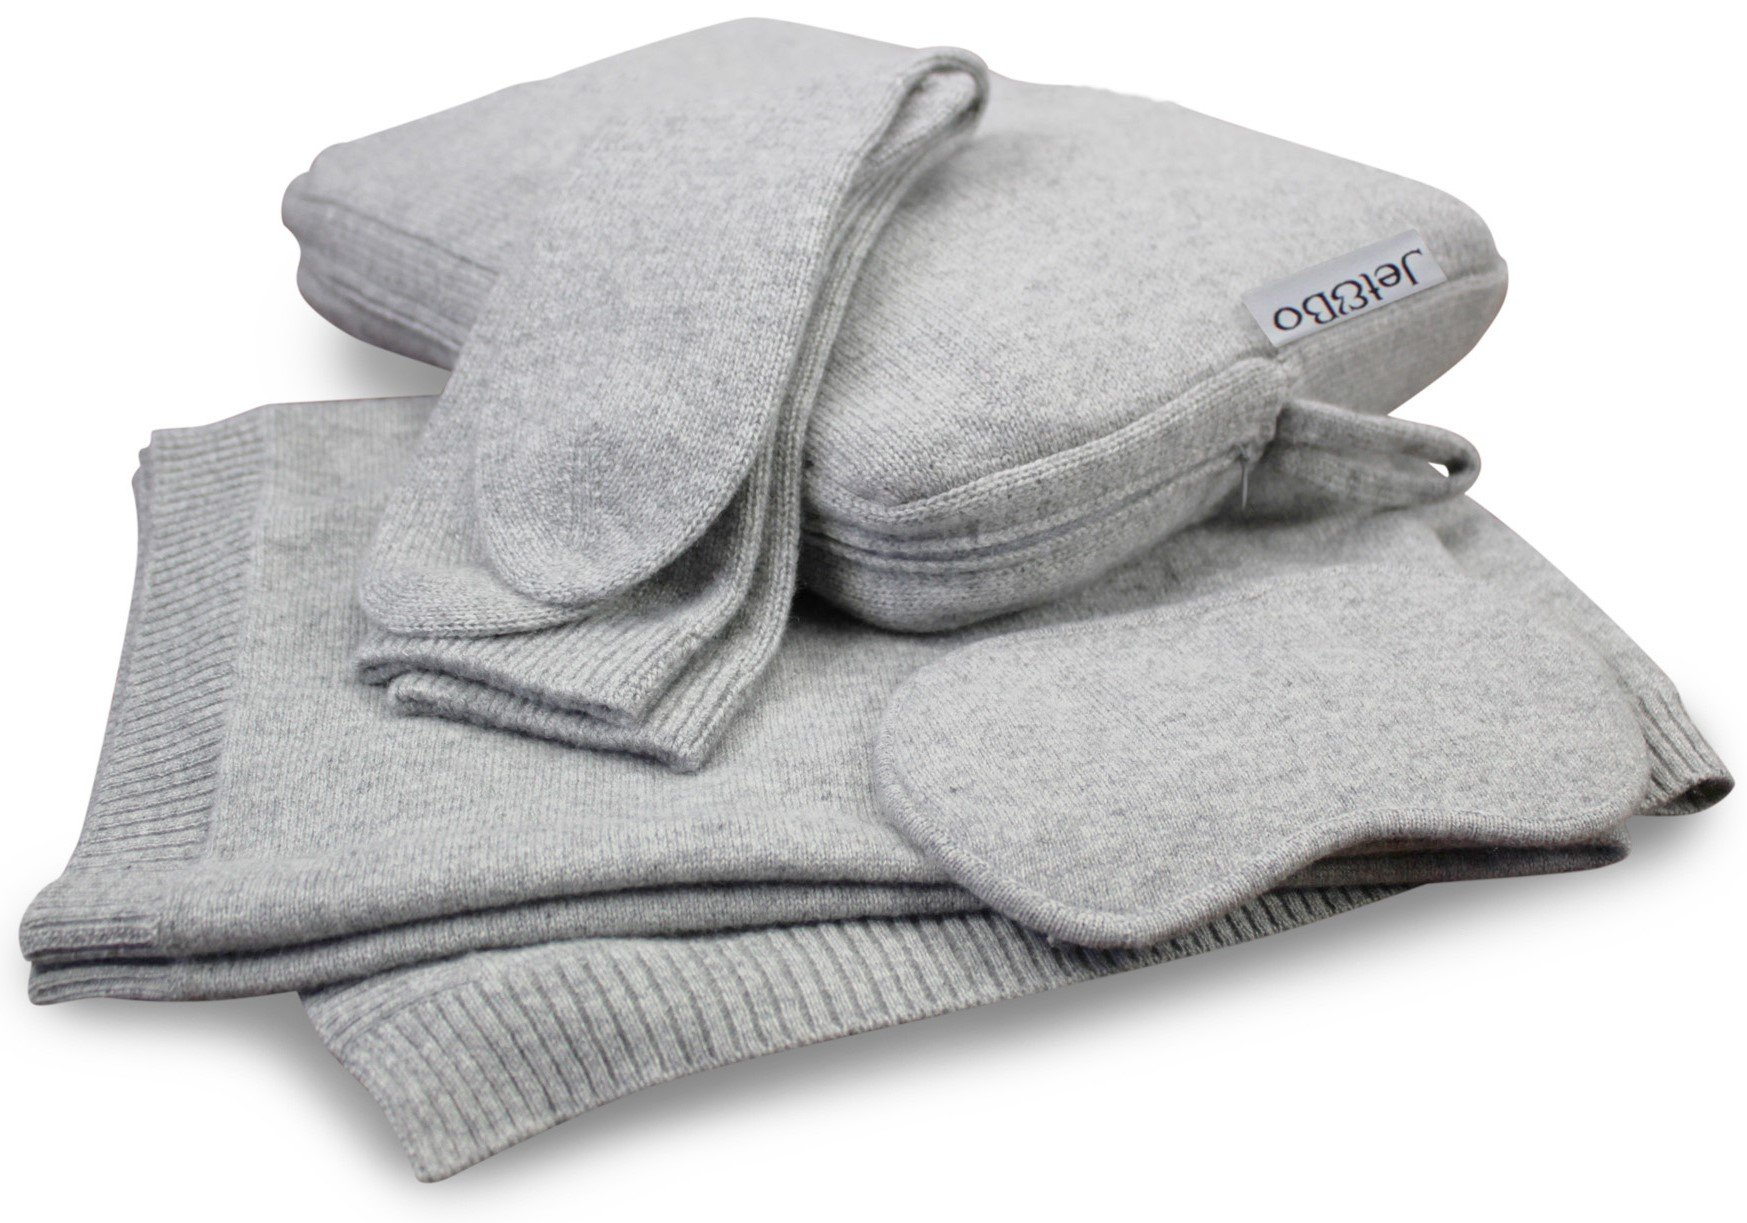 Jet&Bo 100% Cashmere Travel Set: Blanket, Eye Mask, Socks, Carry/Pillow Case Gray by Jet&Bo